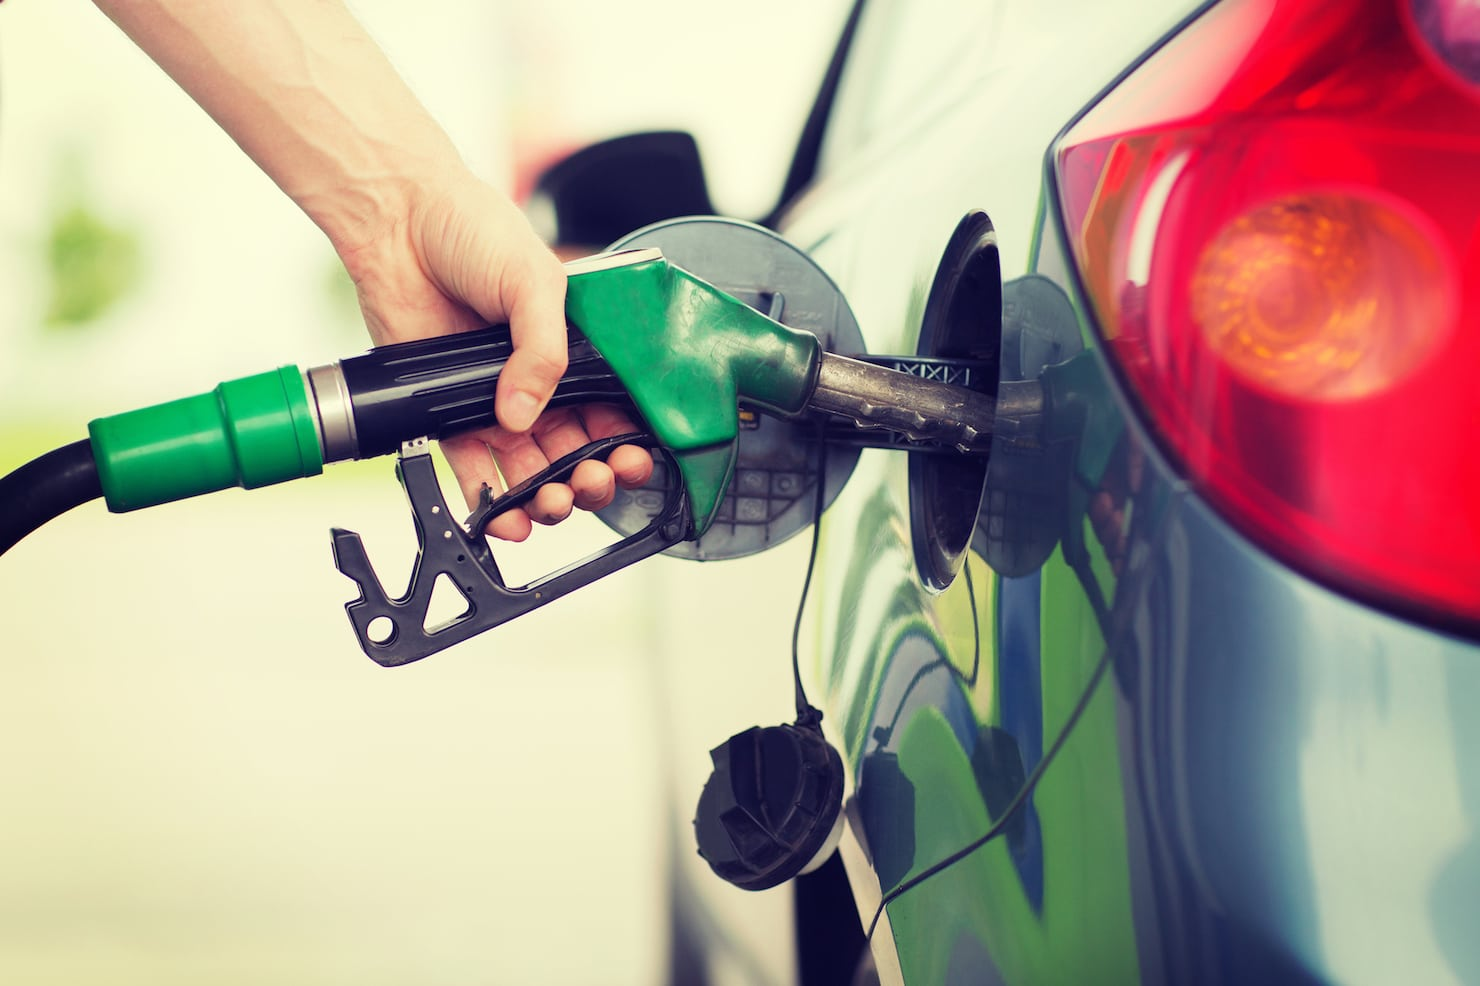 Gas pump fuel stock image